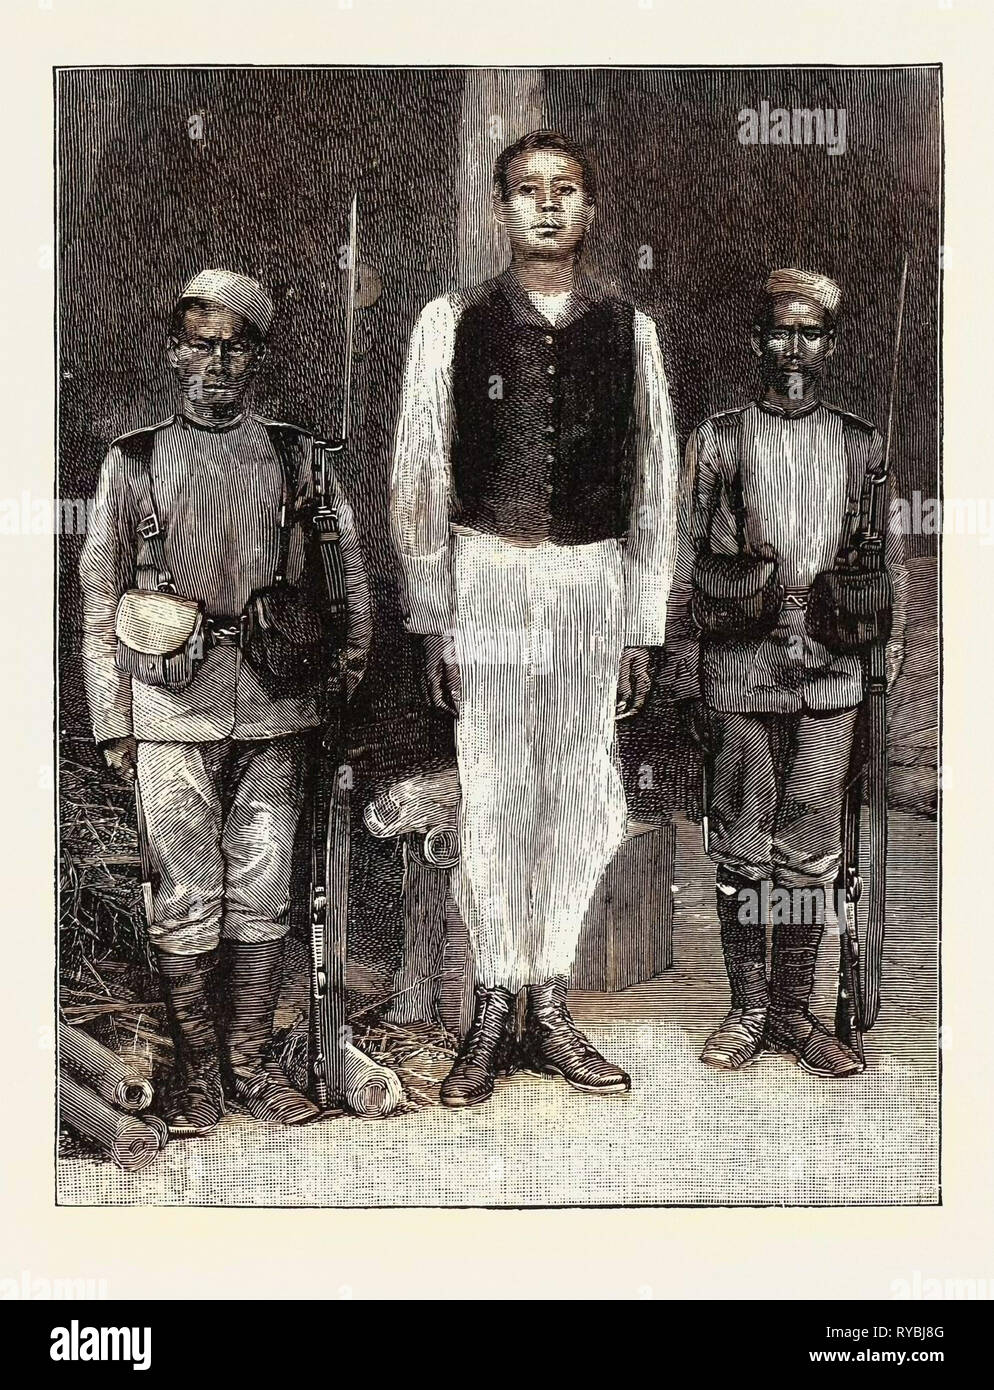 The Manipur Rebels: The Senaputty: Hanged for Murder of English Representatives - Stock Image